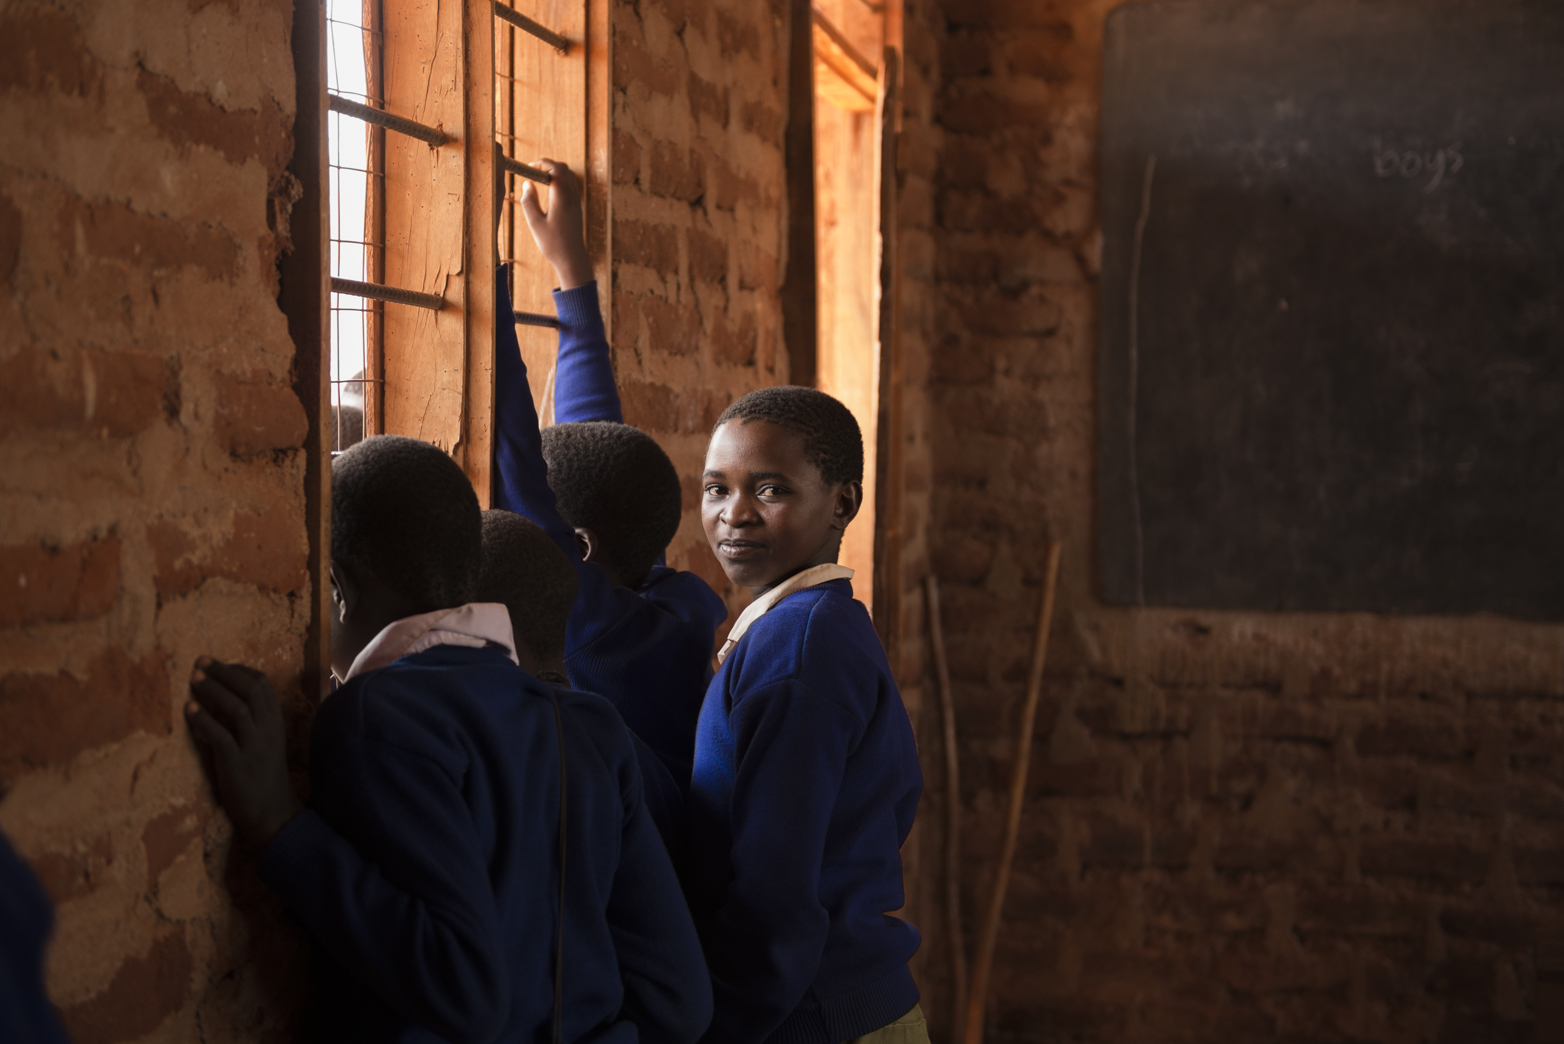 Pupils waiting for a WASH class